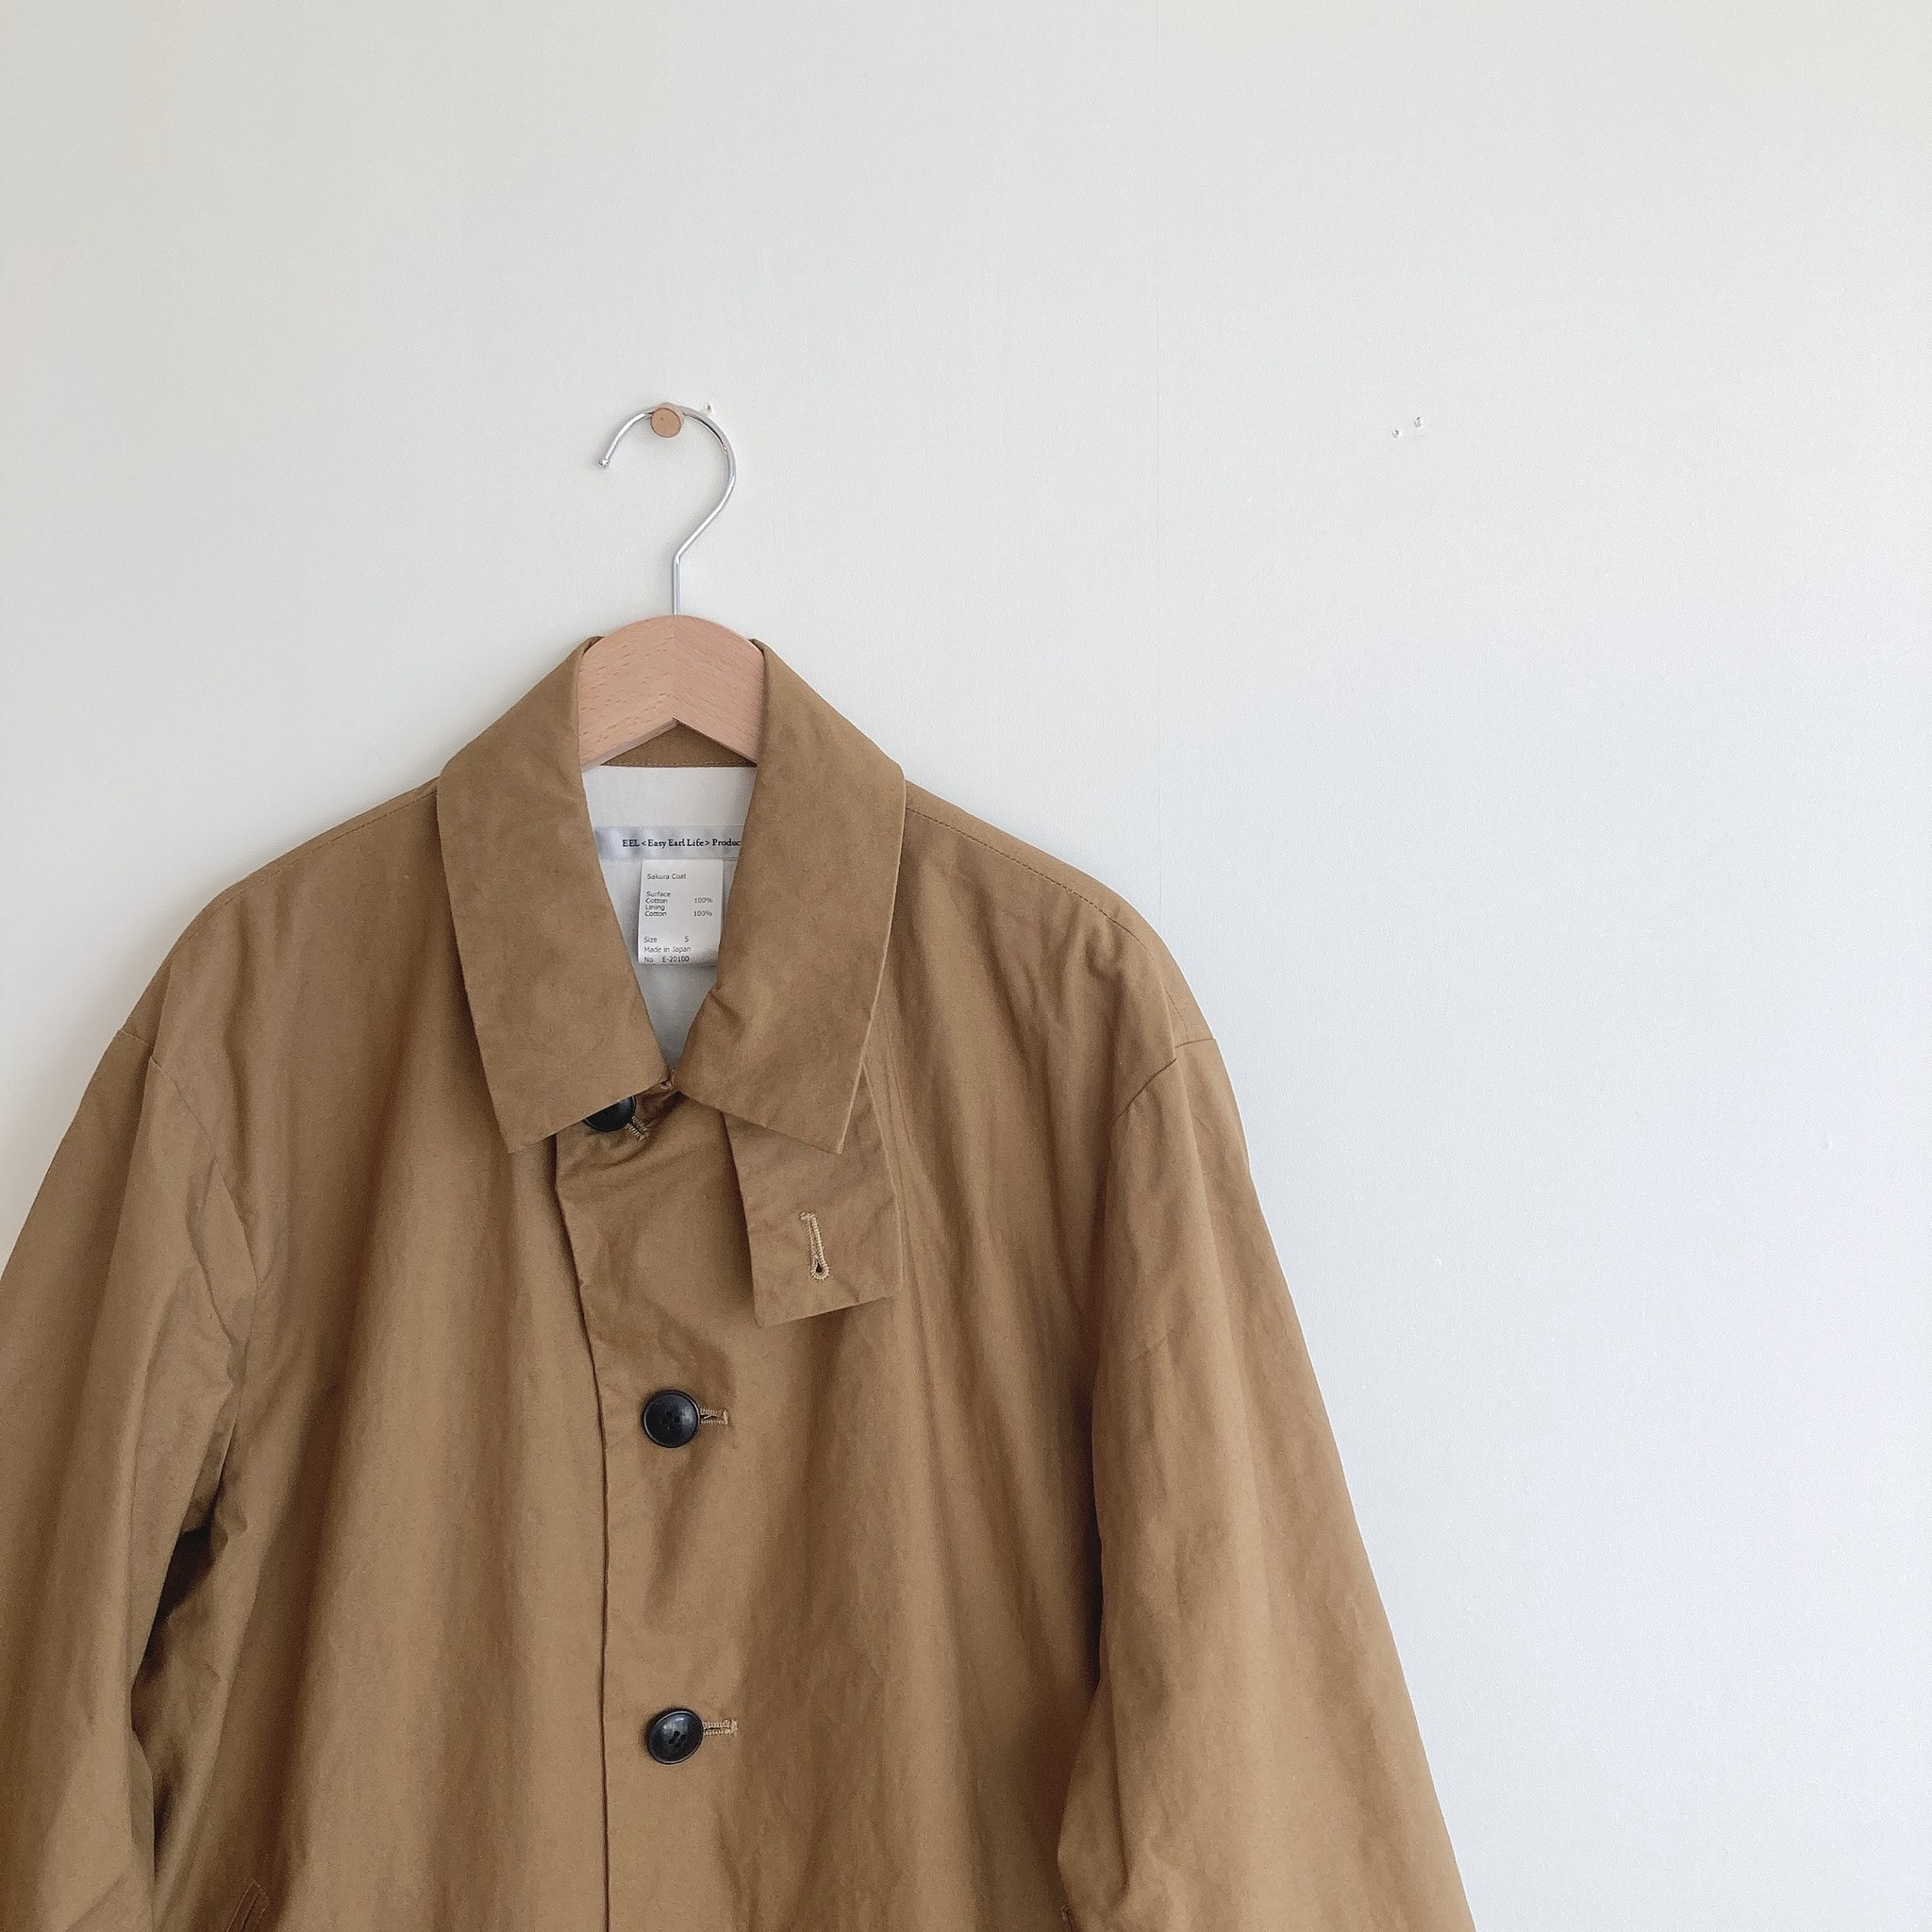 EEL Productsからのサクラコート